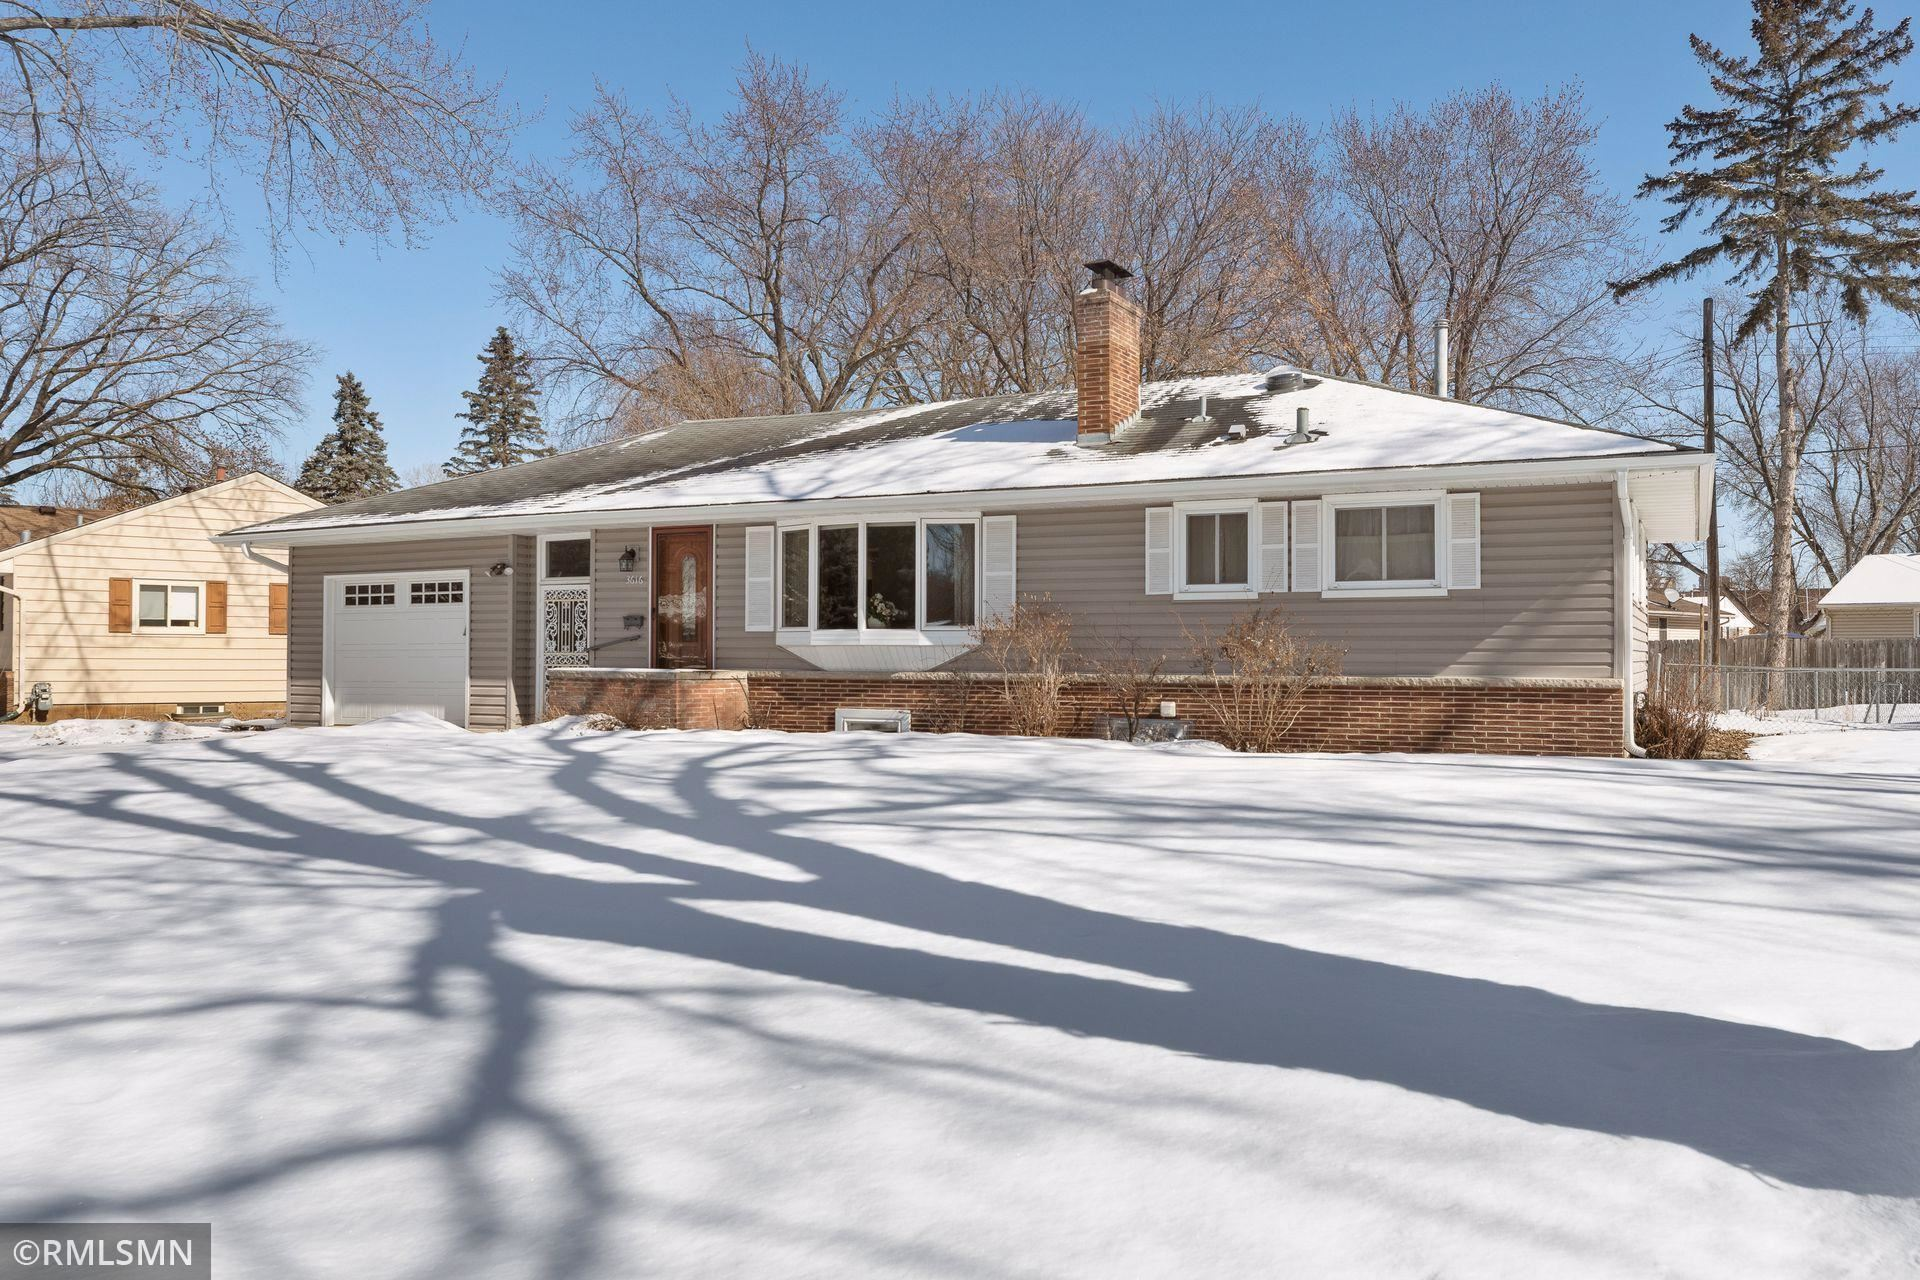 3616 Admiral Lane N, Brooklyn Center, MN 55429 - MLS#: 5719286